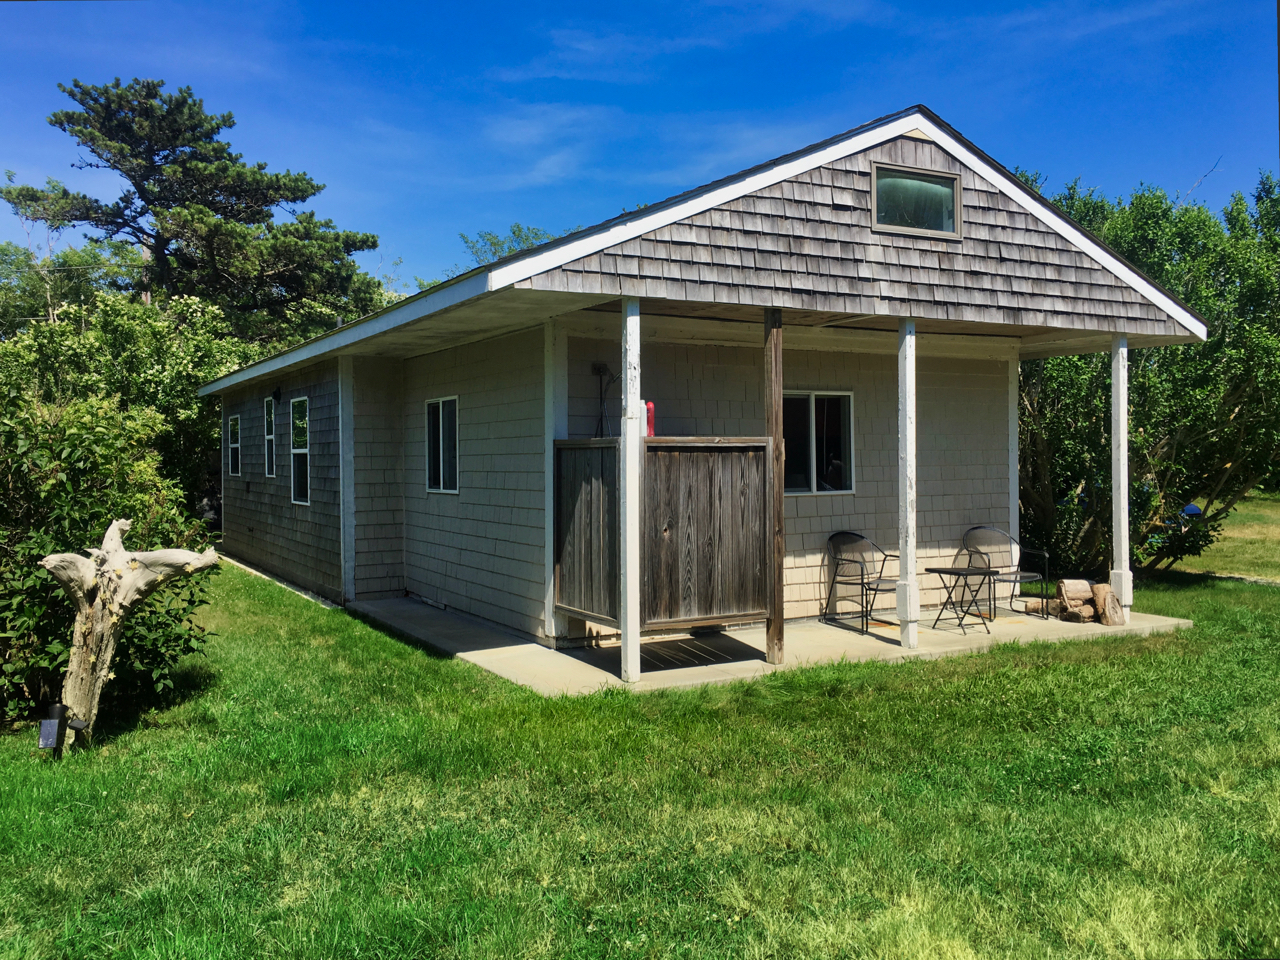 Two Bedroom Cottage above Pilgrim Pake, North Truro, Cape Cod